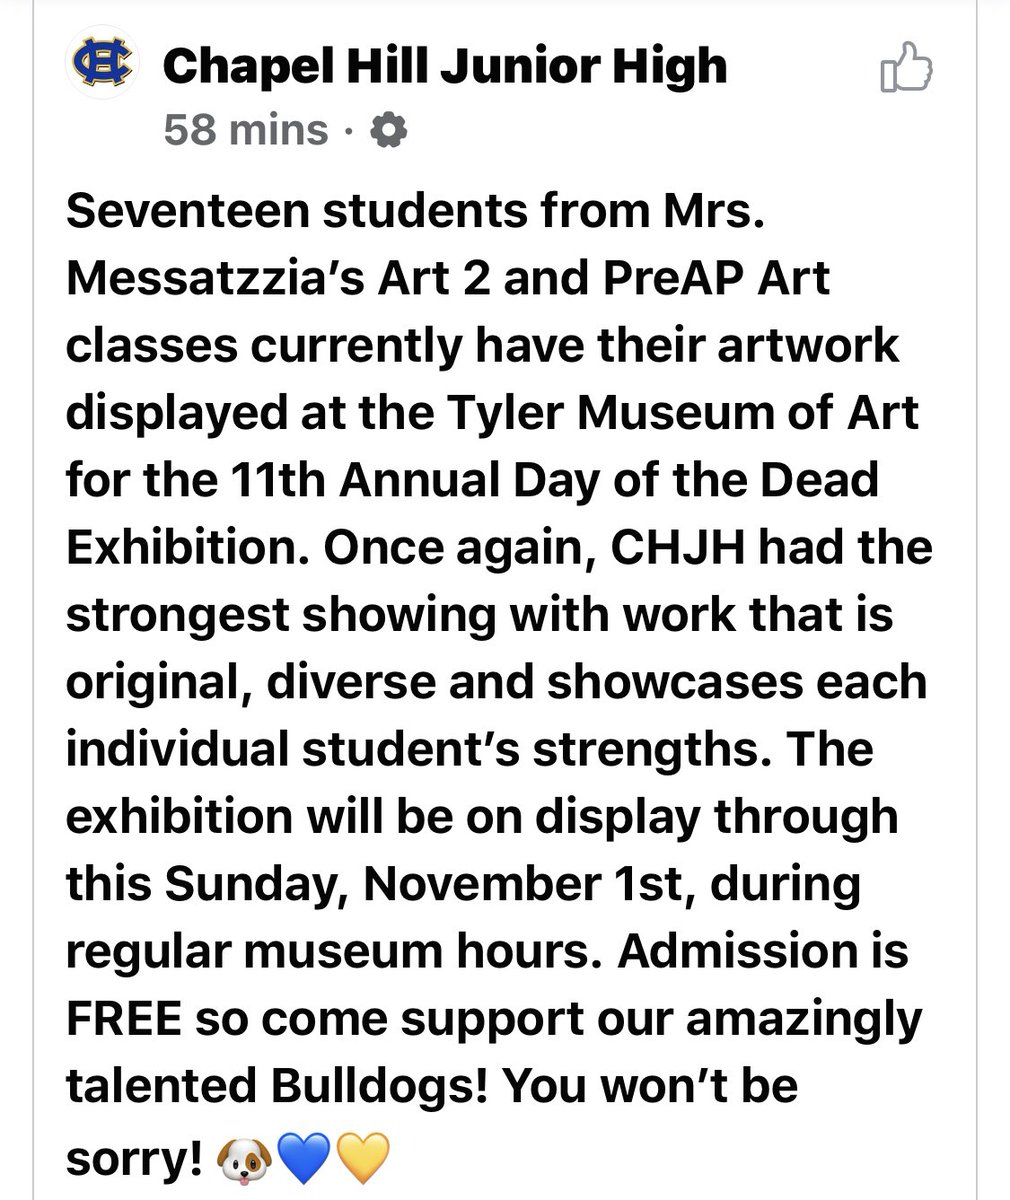 We are so lucky to have such talented teachers and students. @ChapelHill_ISD